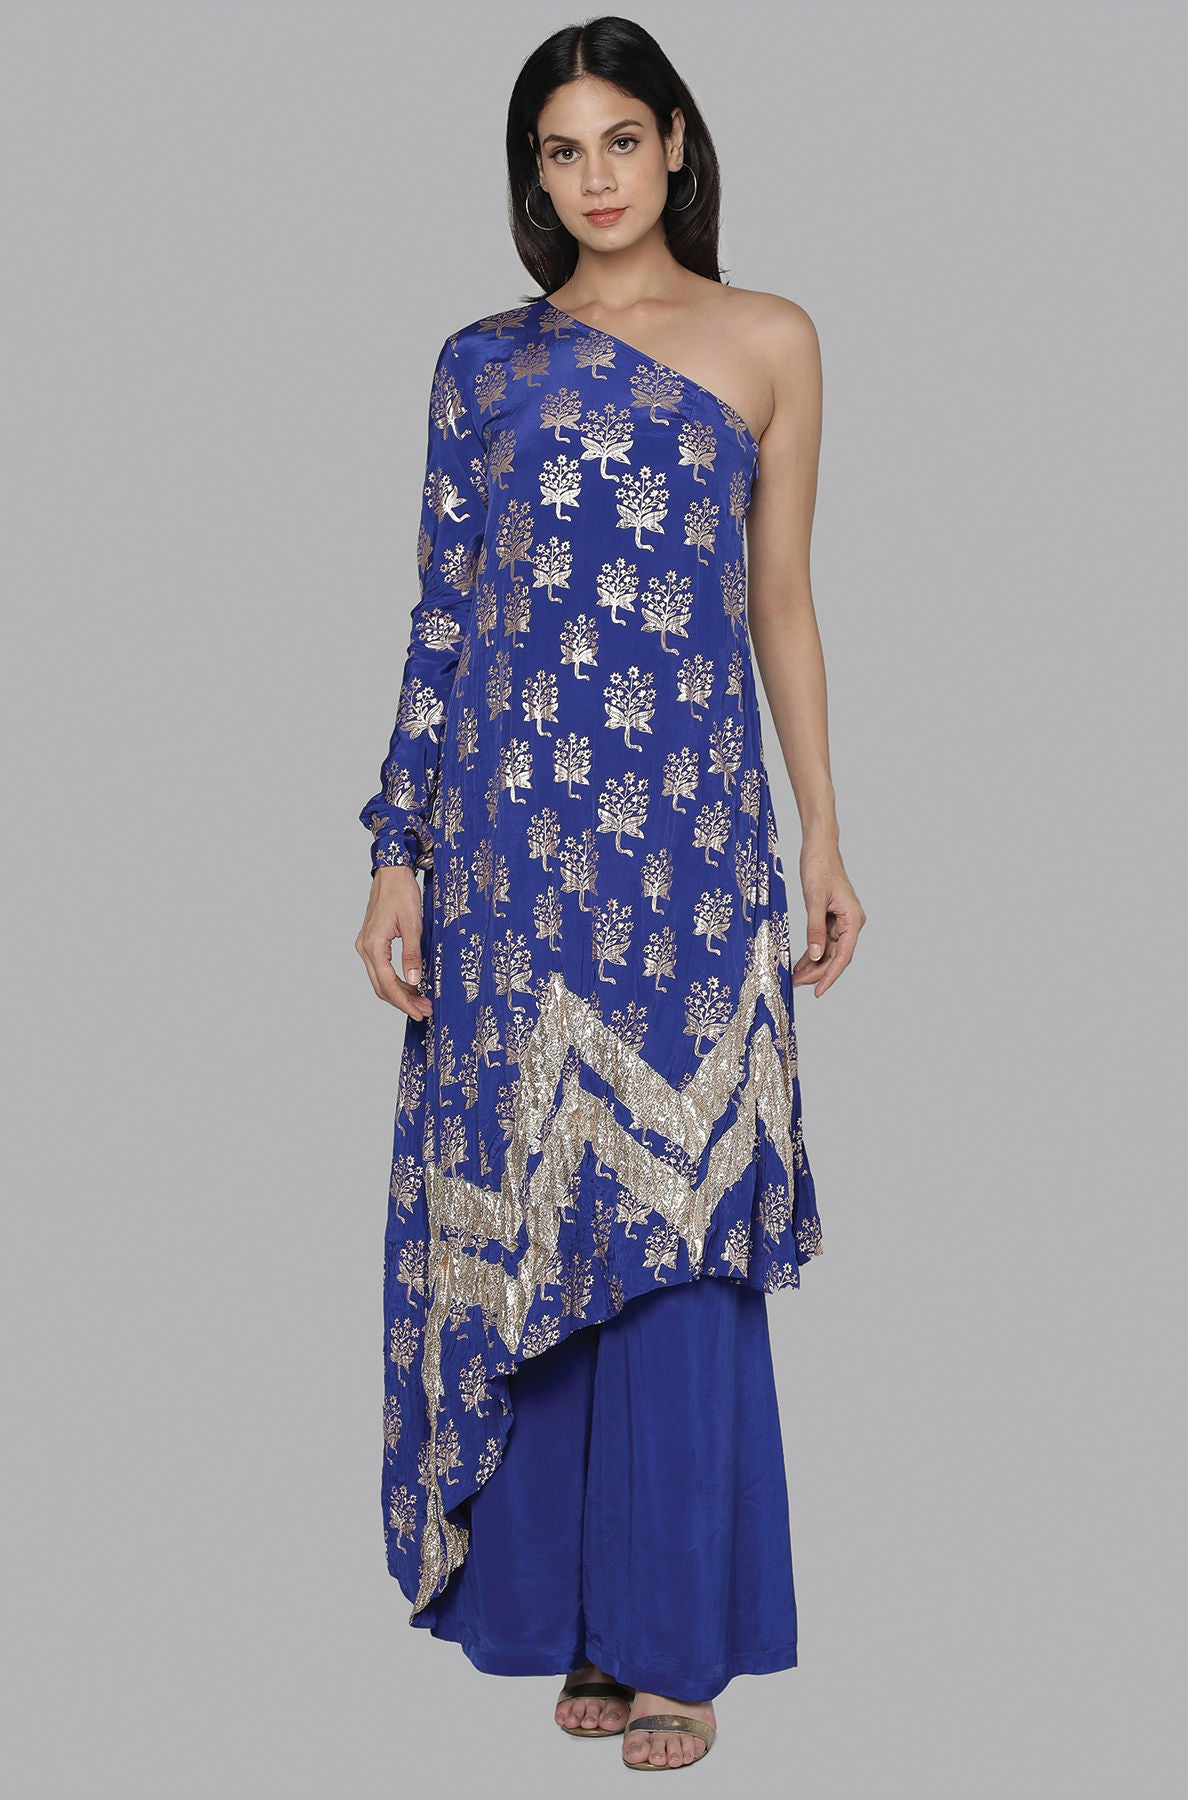 BLUE STAR FLOWER CRINKLE GOTA ONE SHOULDER TUNIC SET - The Grand Trunk